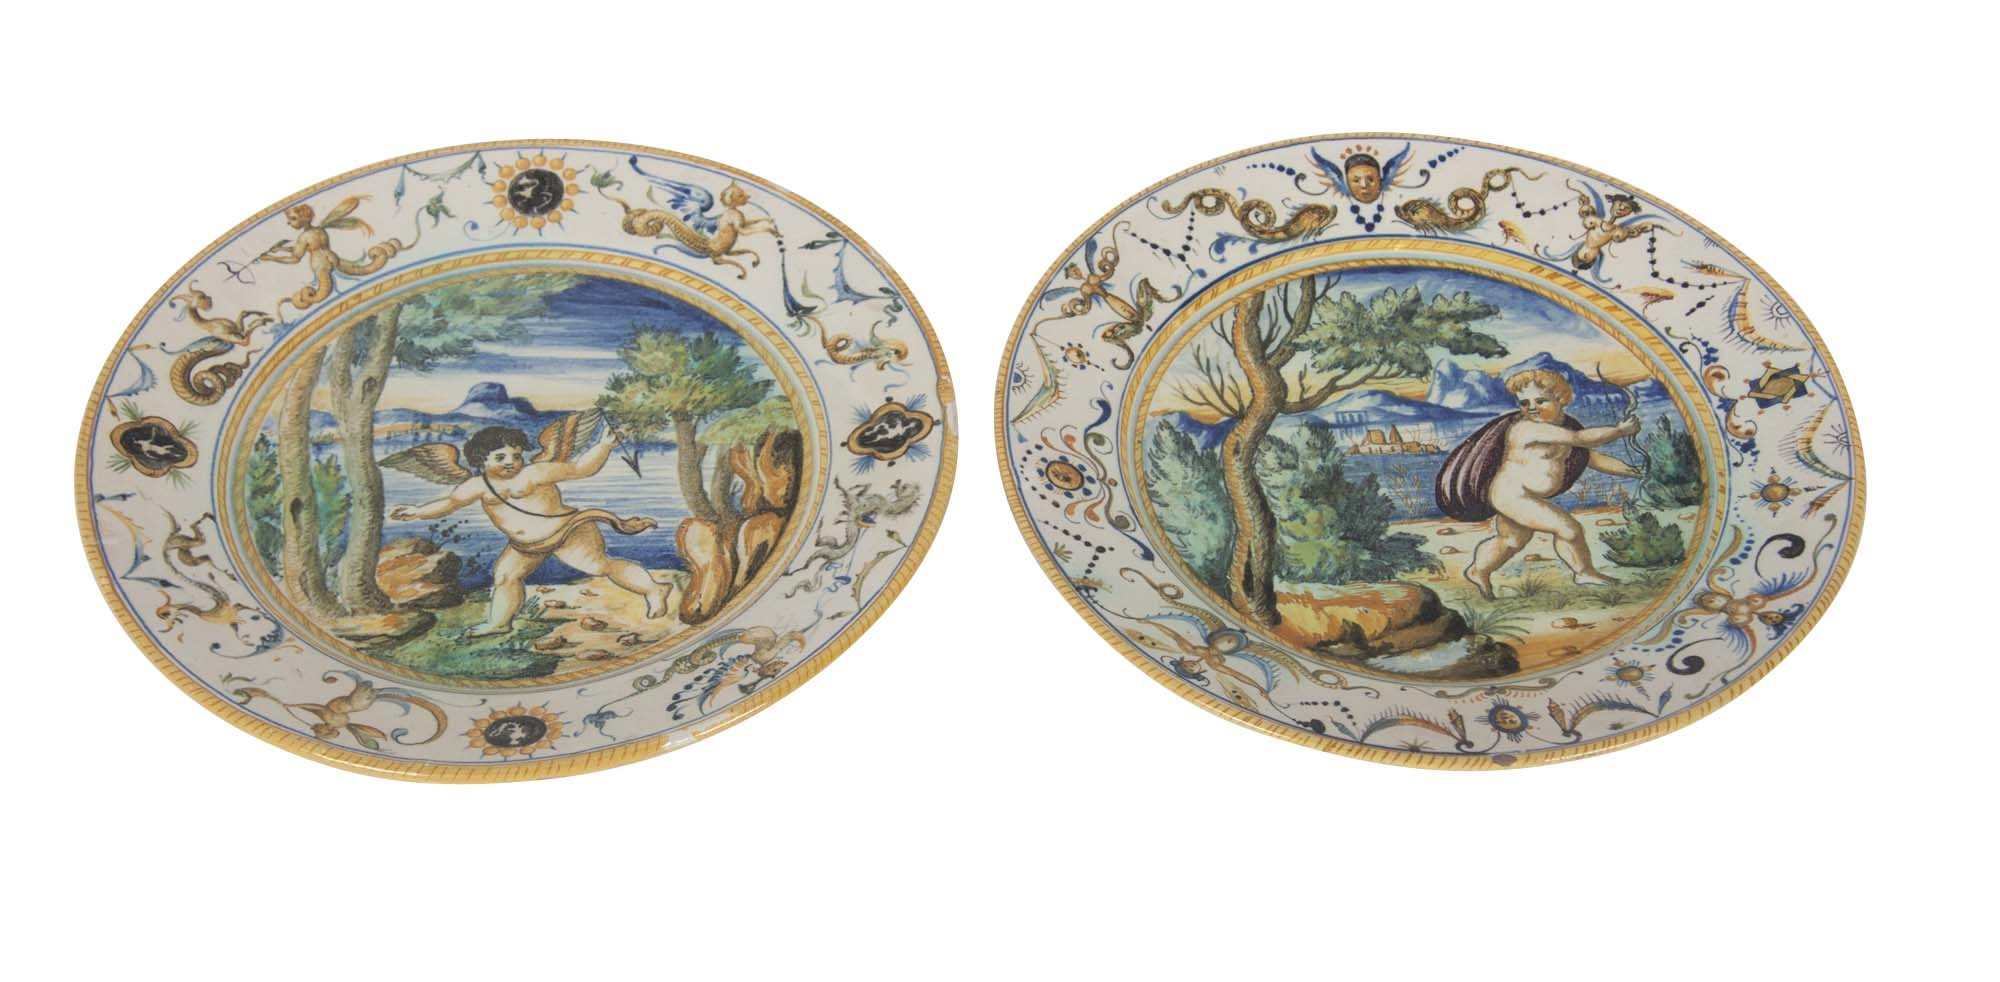 Pair of Cantagalli Plates